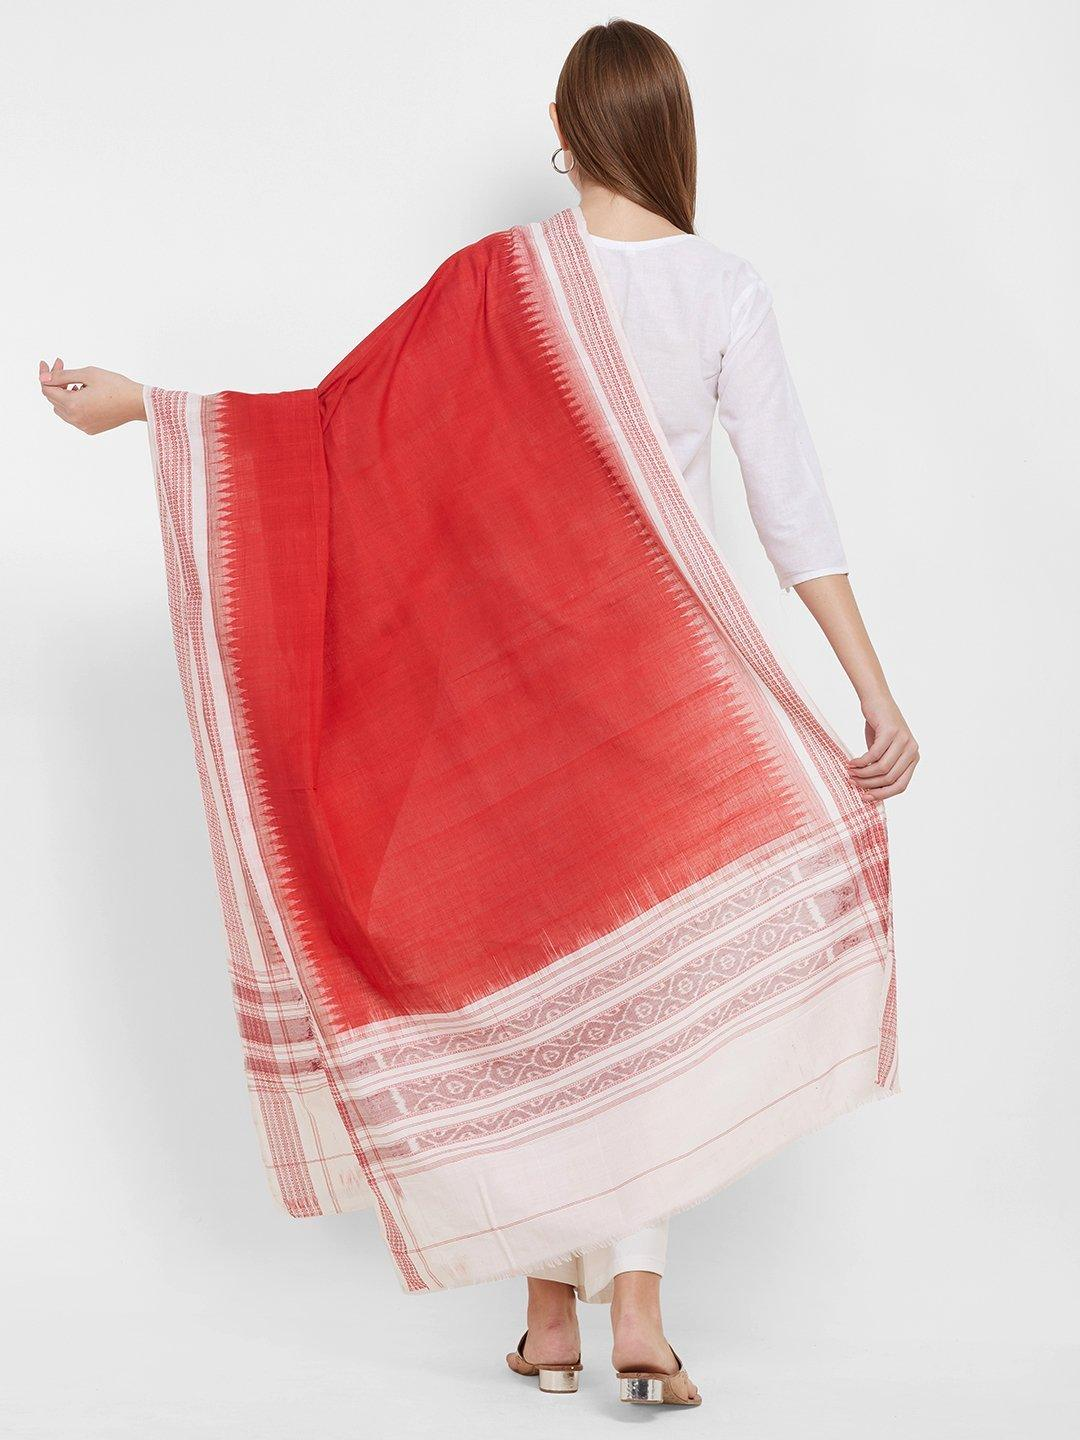 CraftsCollection.in -Red and White Sambalpuri Cotton Dupatta